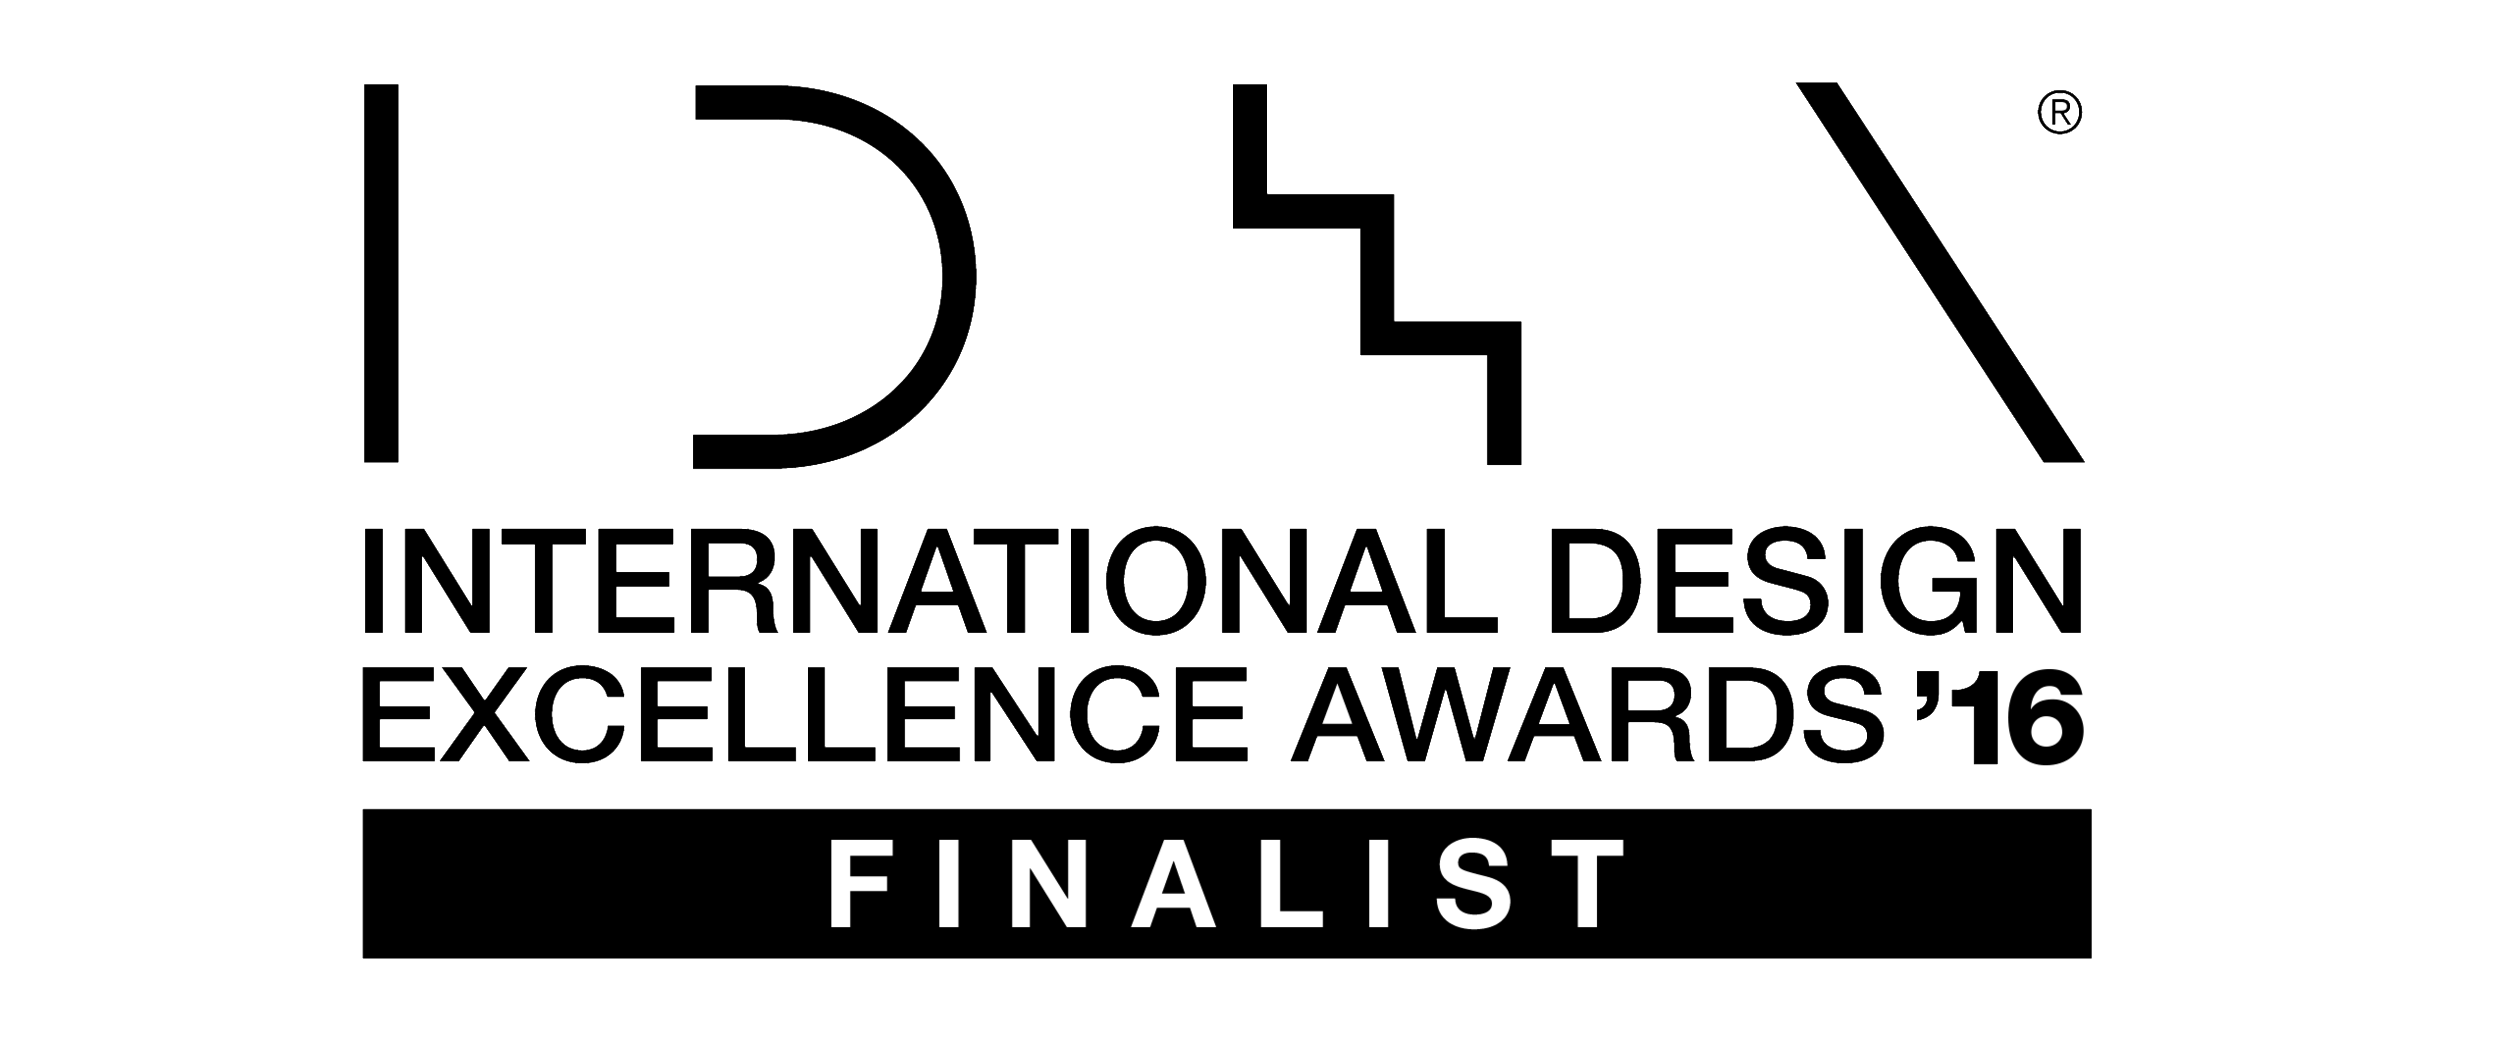 IDSA Design Recognition - With such a futuristic water solution we were humbled that IDSA considered our project as a finalist.